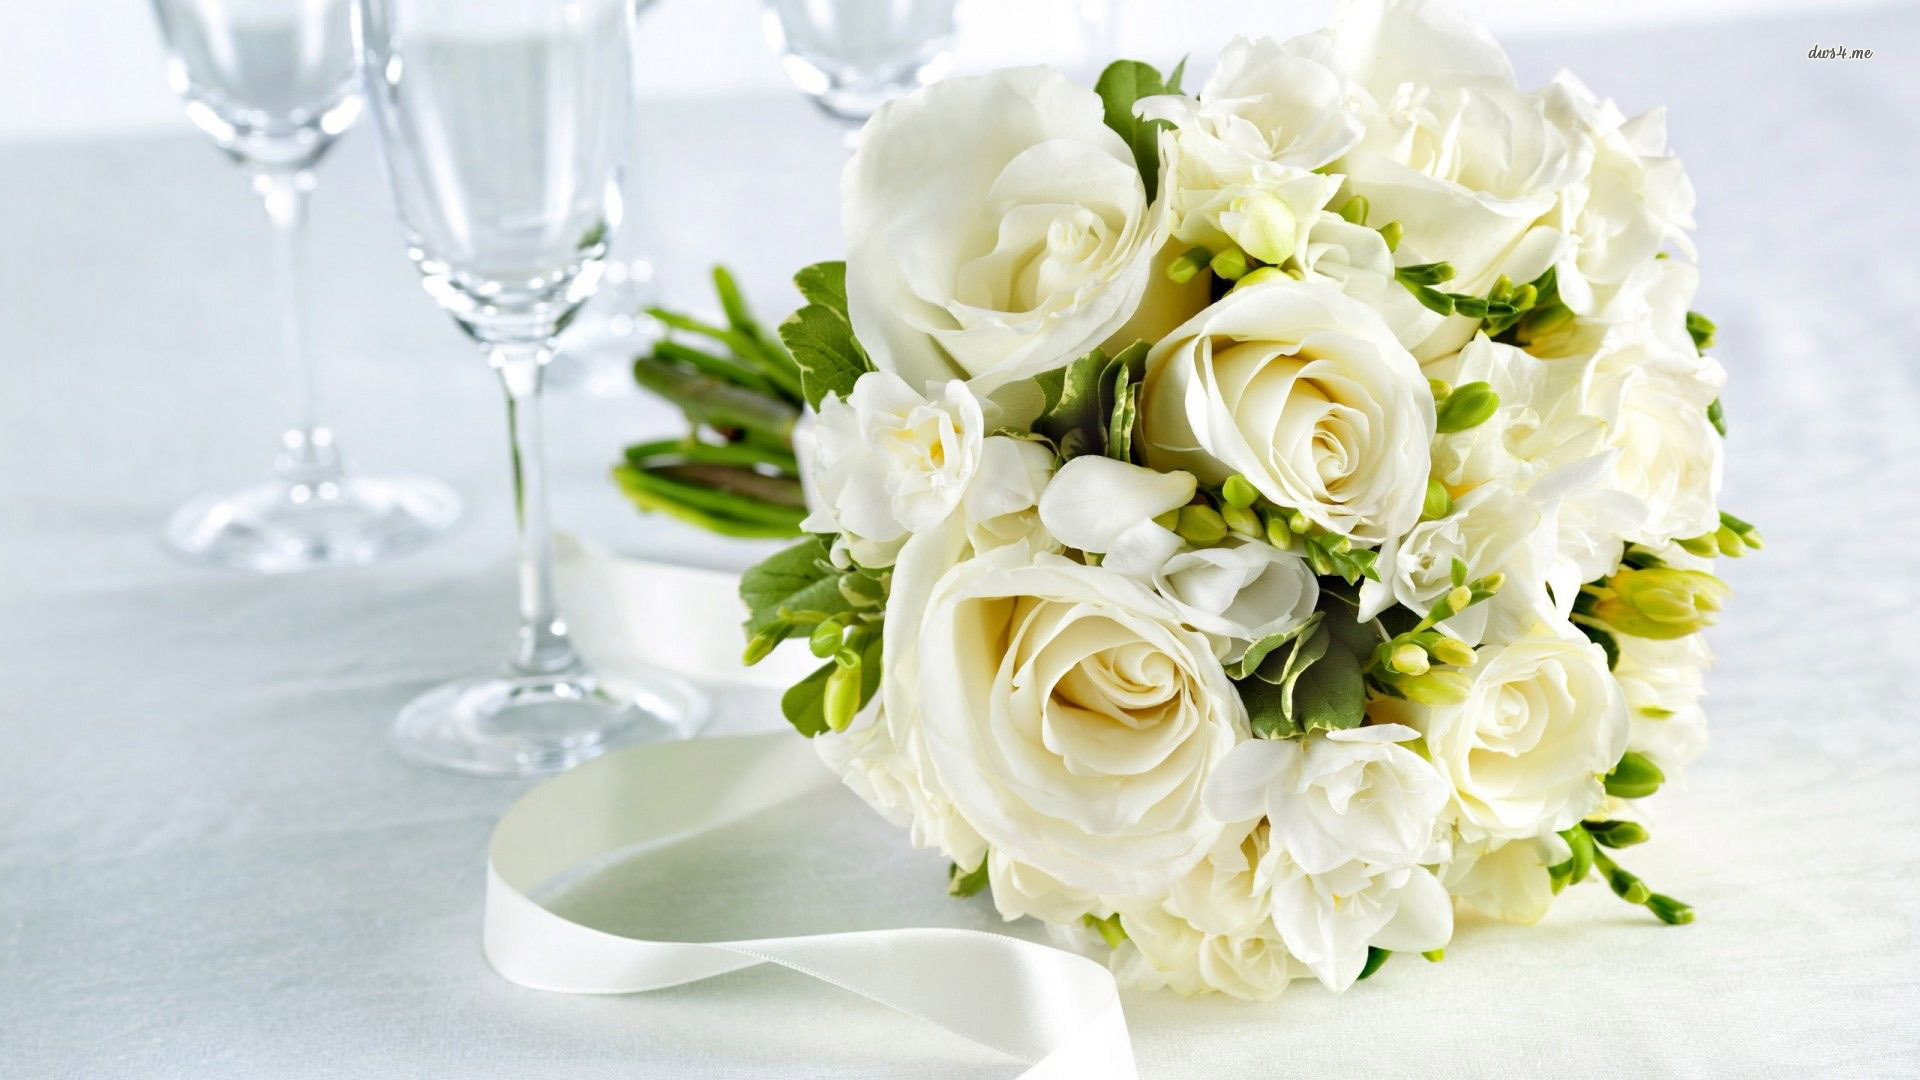 White Rose Flowers Wallpapers: White Roses Flowers Hd Free Wallpapers